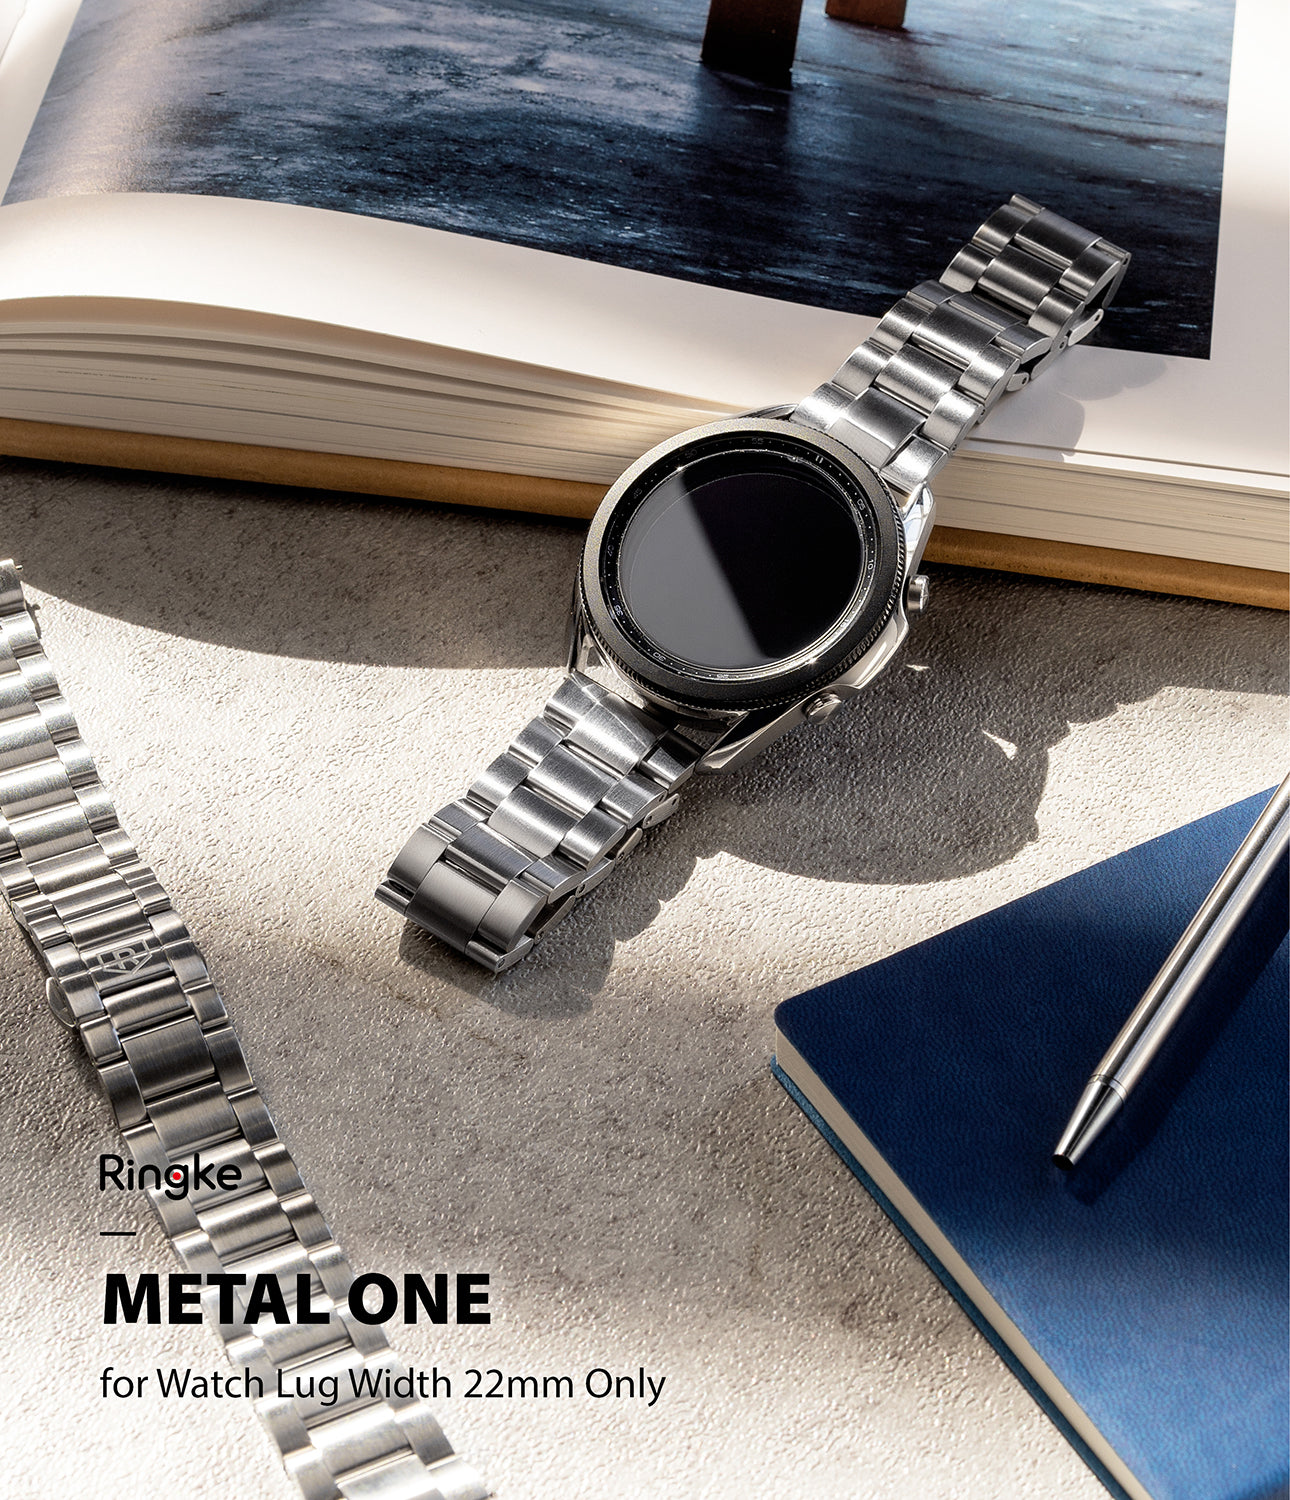 ringke metal one band black for watch lug 22mm